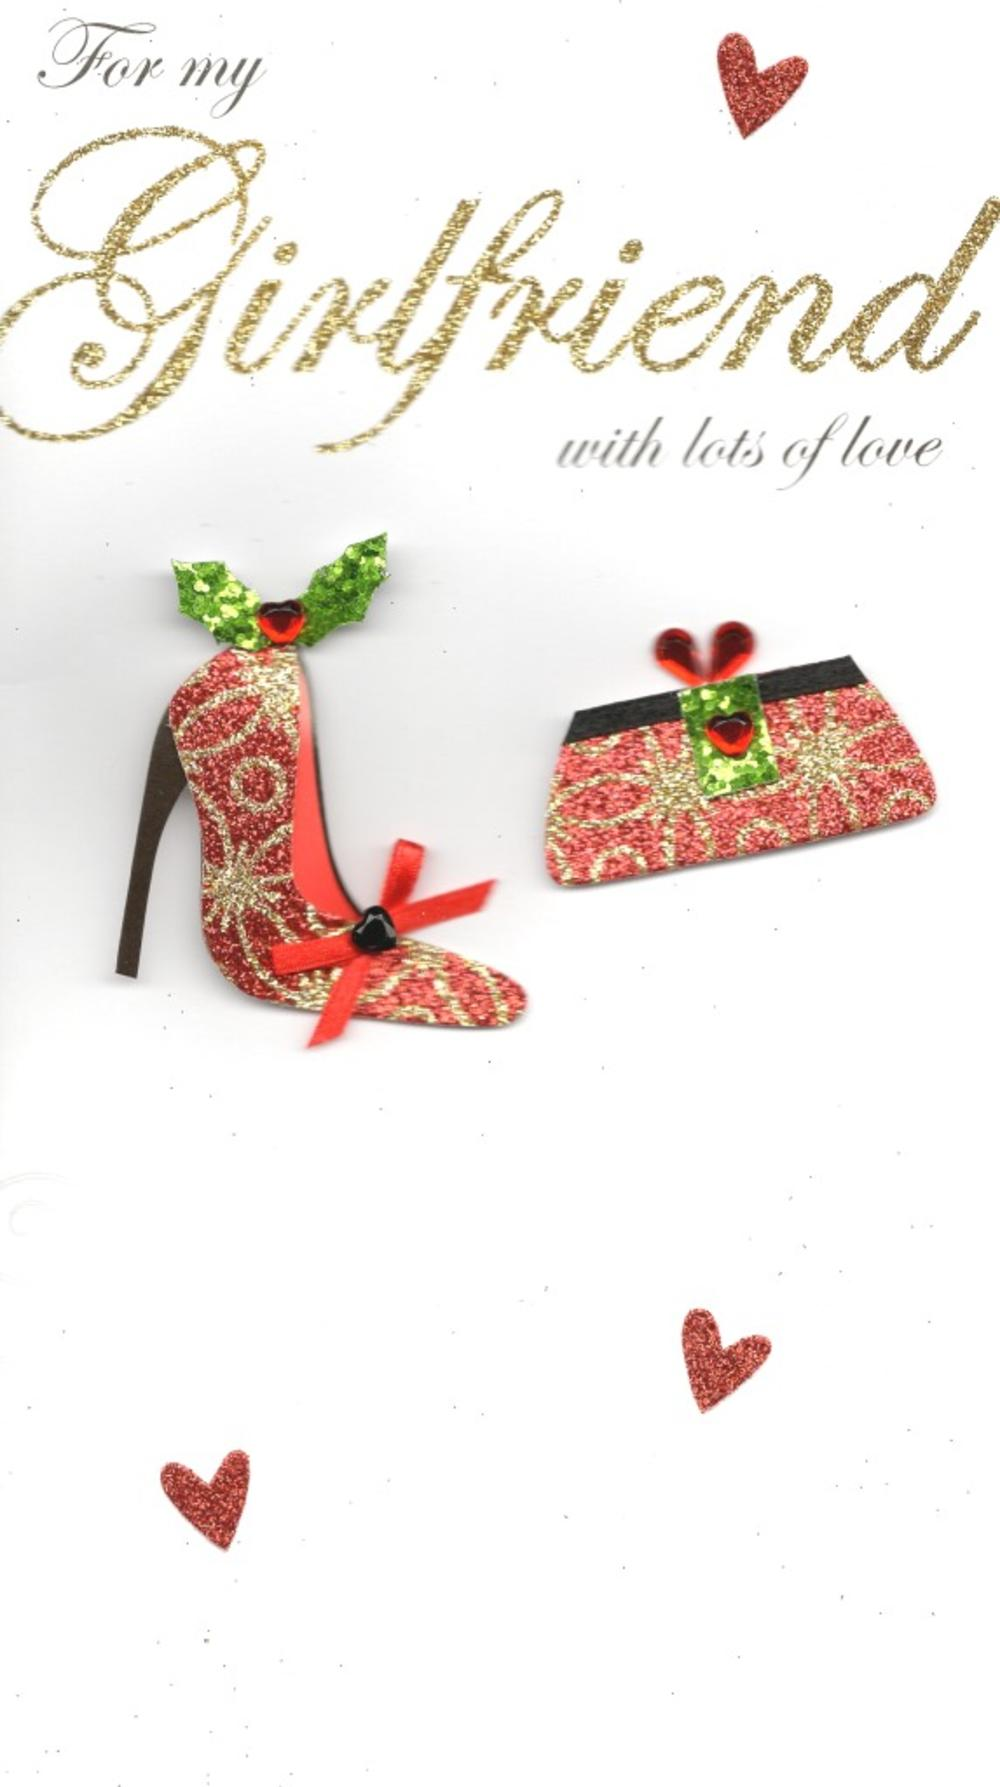 For My Girlfriend Special Luxury Handmade Christmas Card